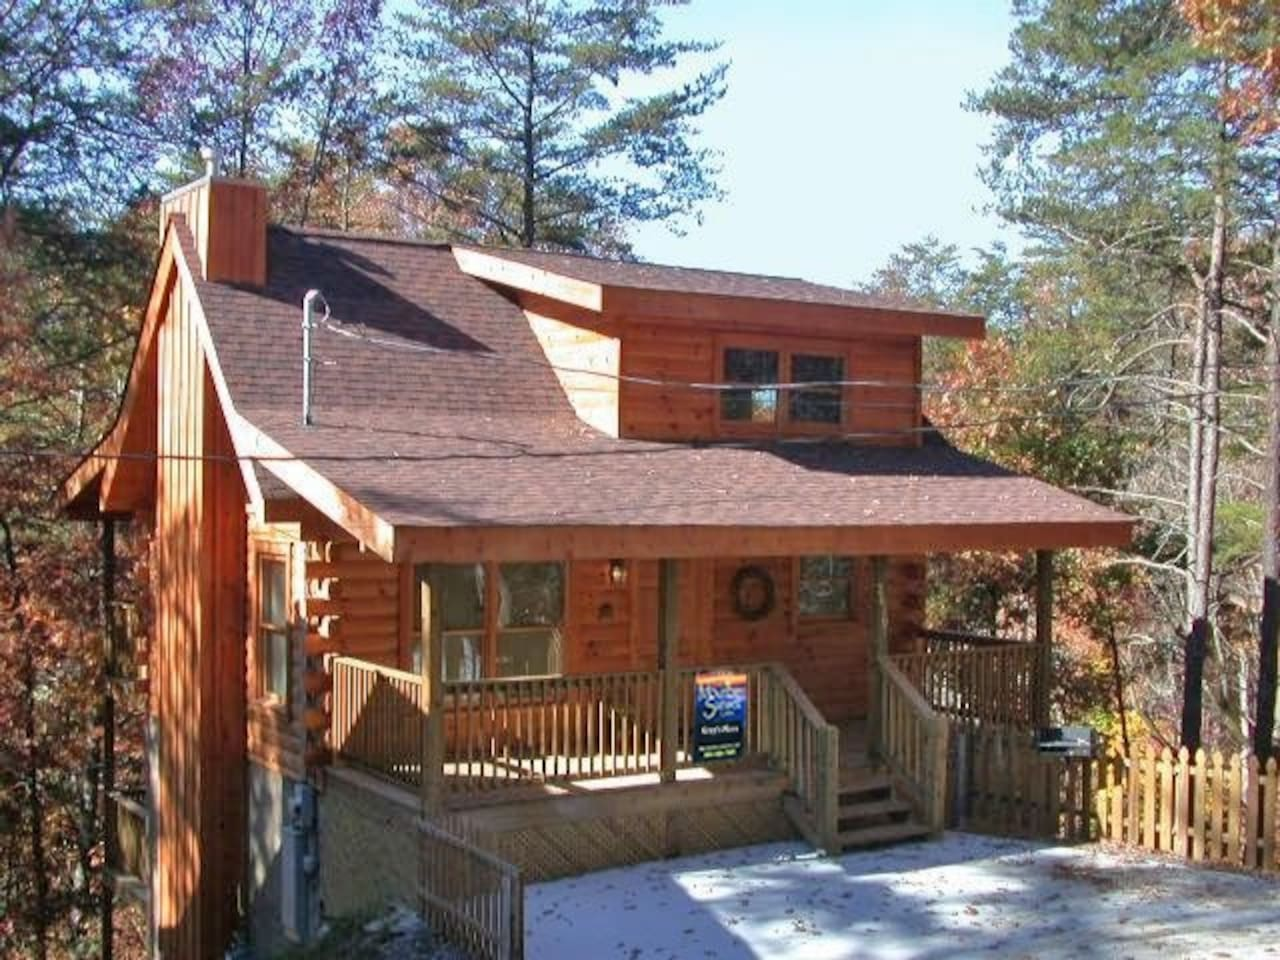 Wild Thang cabin - make your own memories here!